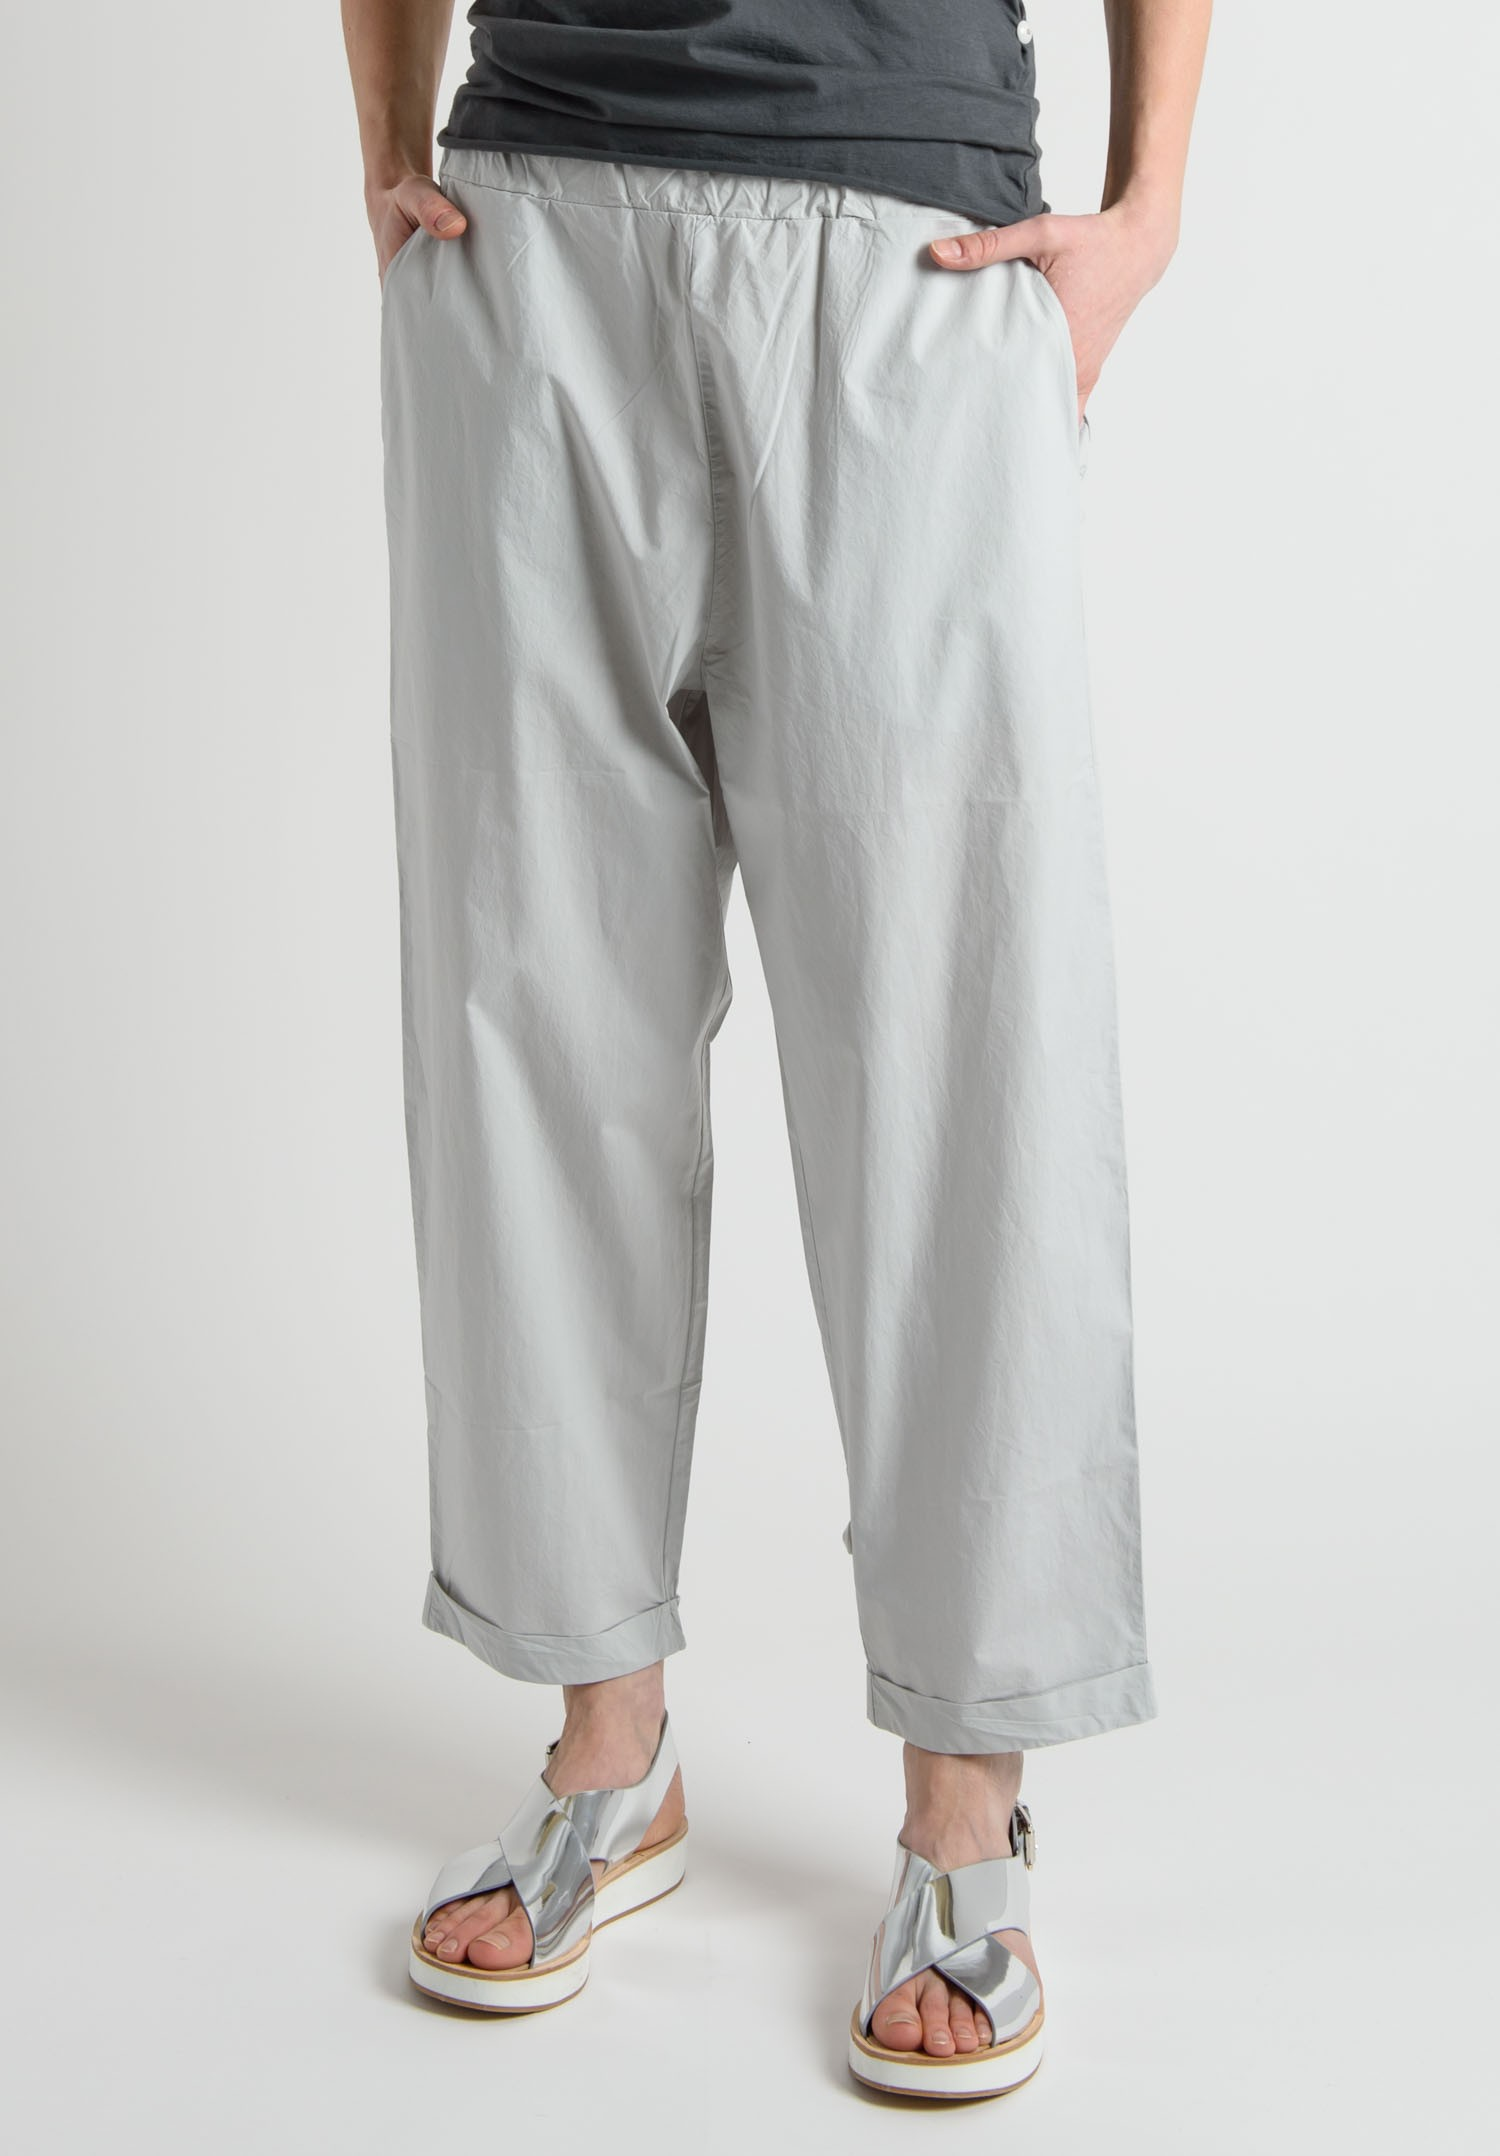 Pull-on pants in woven cotton fabric. Elasticized drawstring waistband and side pockets. Tapered legs with seams at knees and elasticized hems.